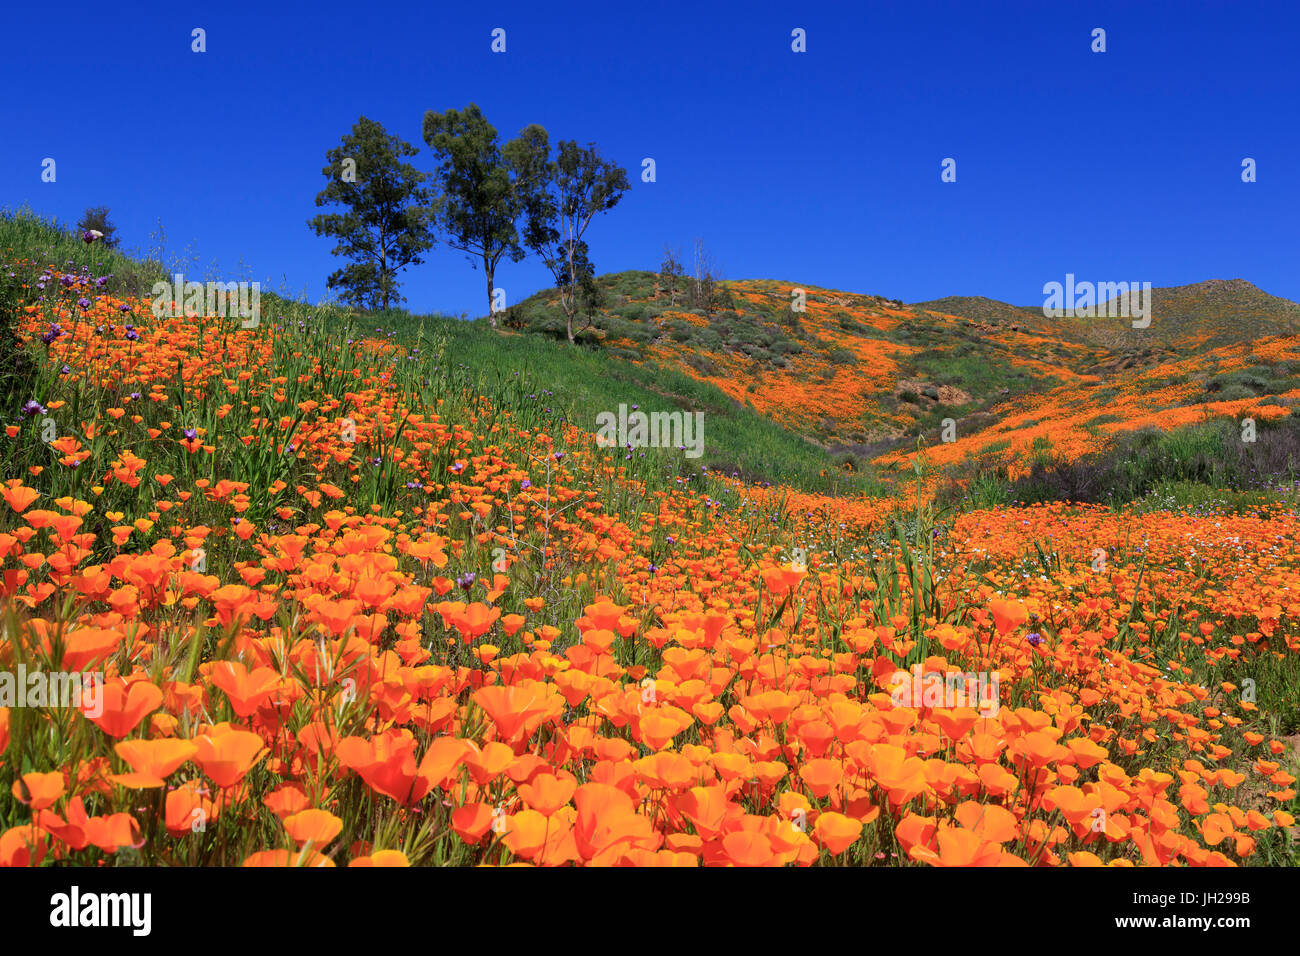 Poppies, Walker Canyon, Lake Elsinore, California, United States of America, North America - Stock Image